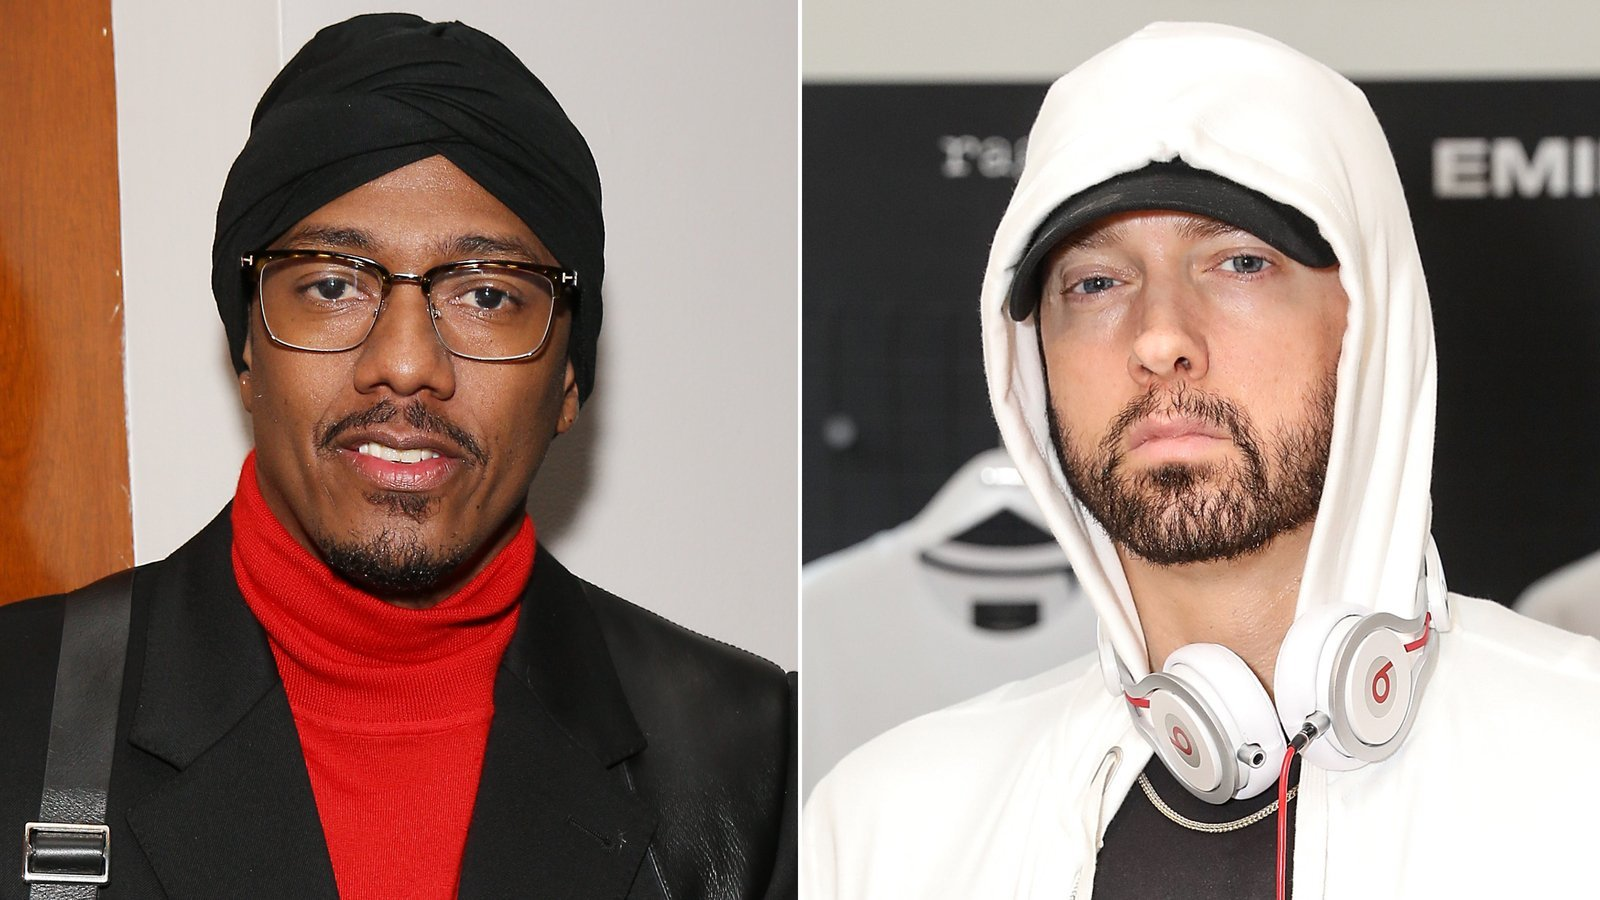 Eminem and Nick Cannon feuding again after diss track